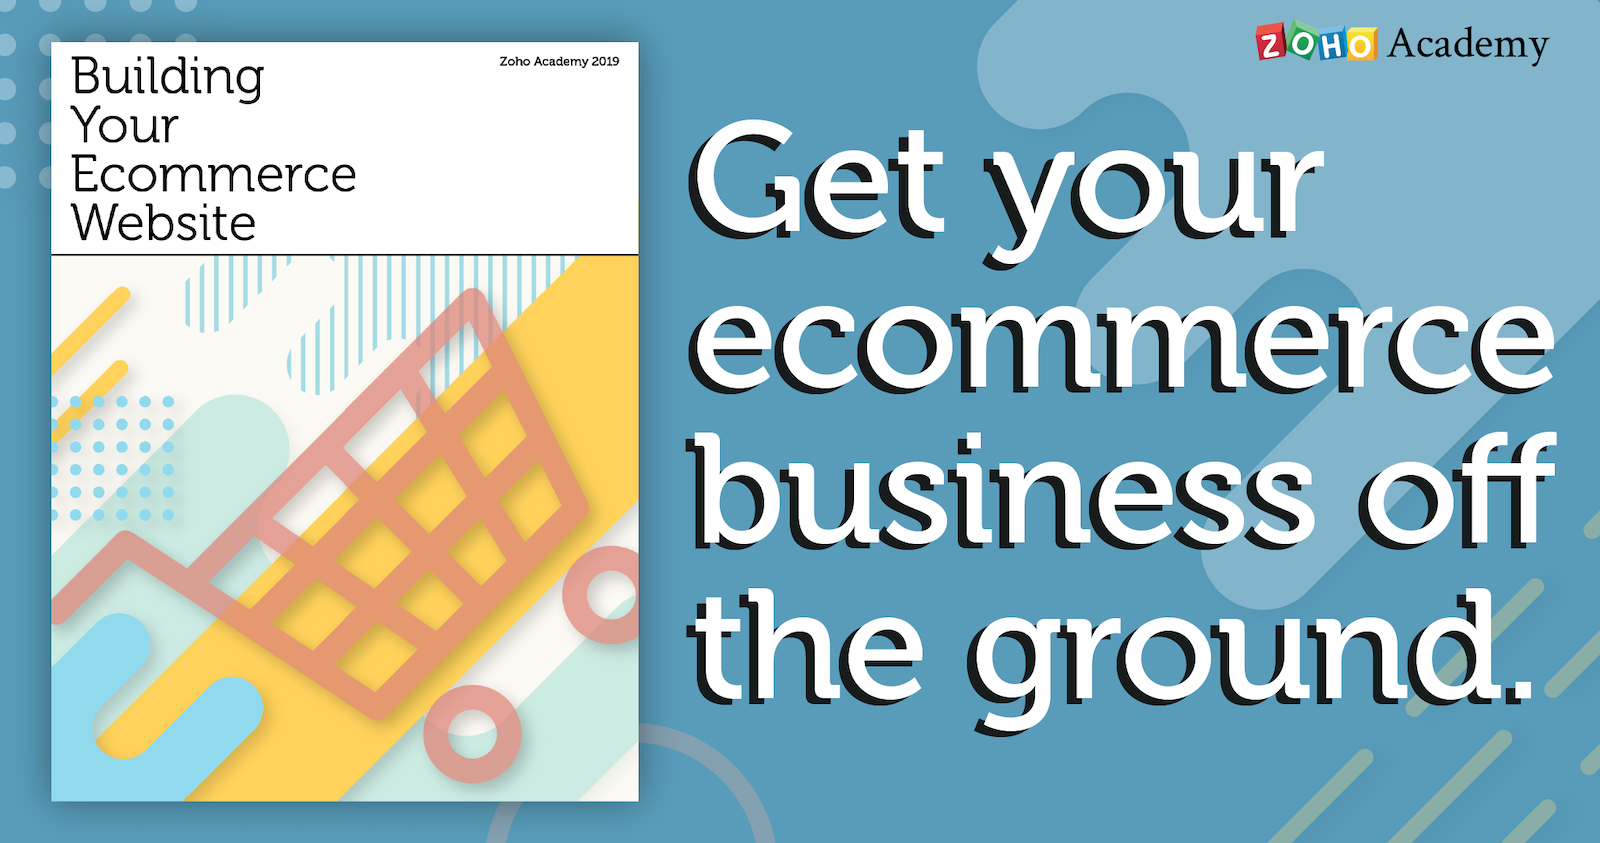 Zoho Academy Wants to Help You Get Your Ecommerce Site Up and Running